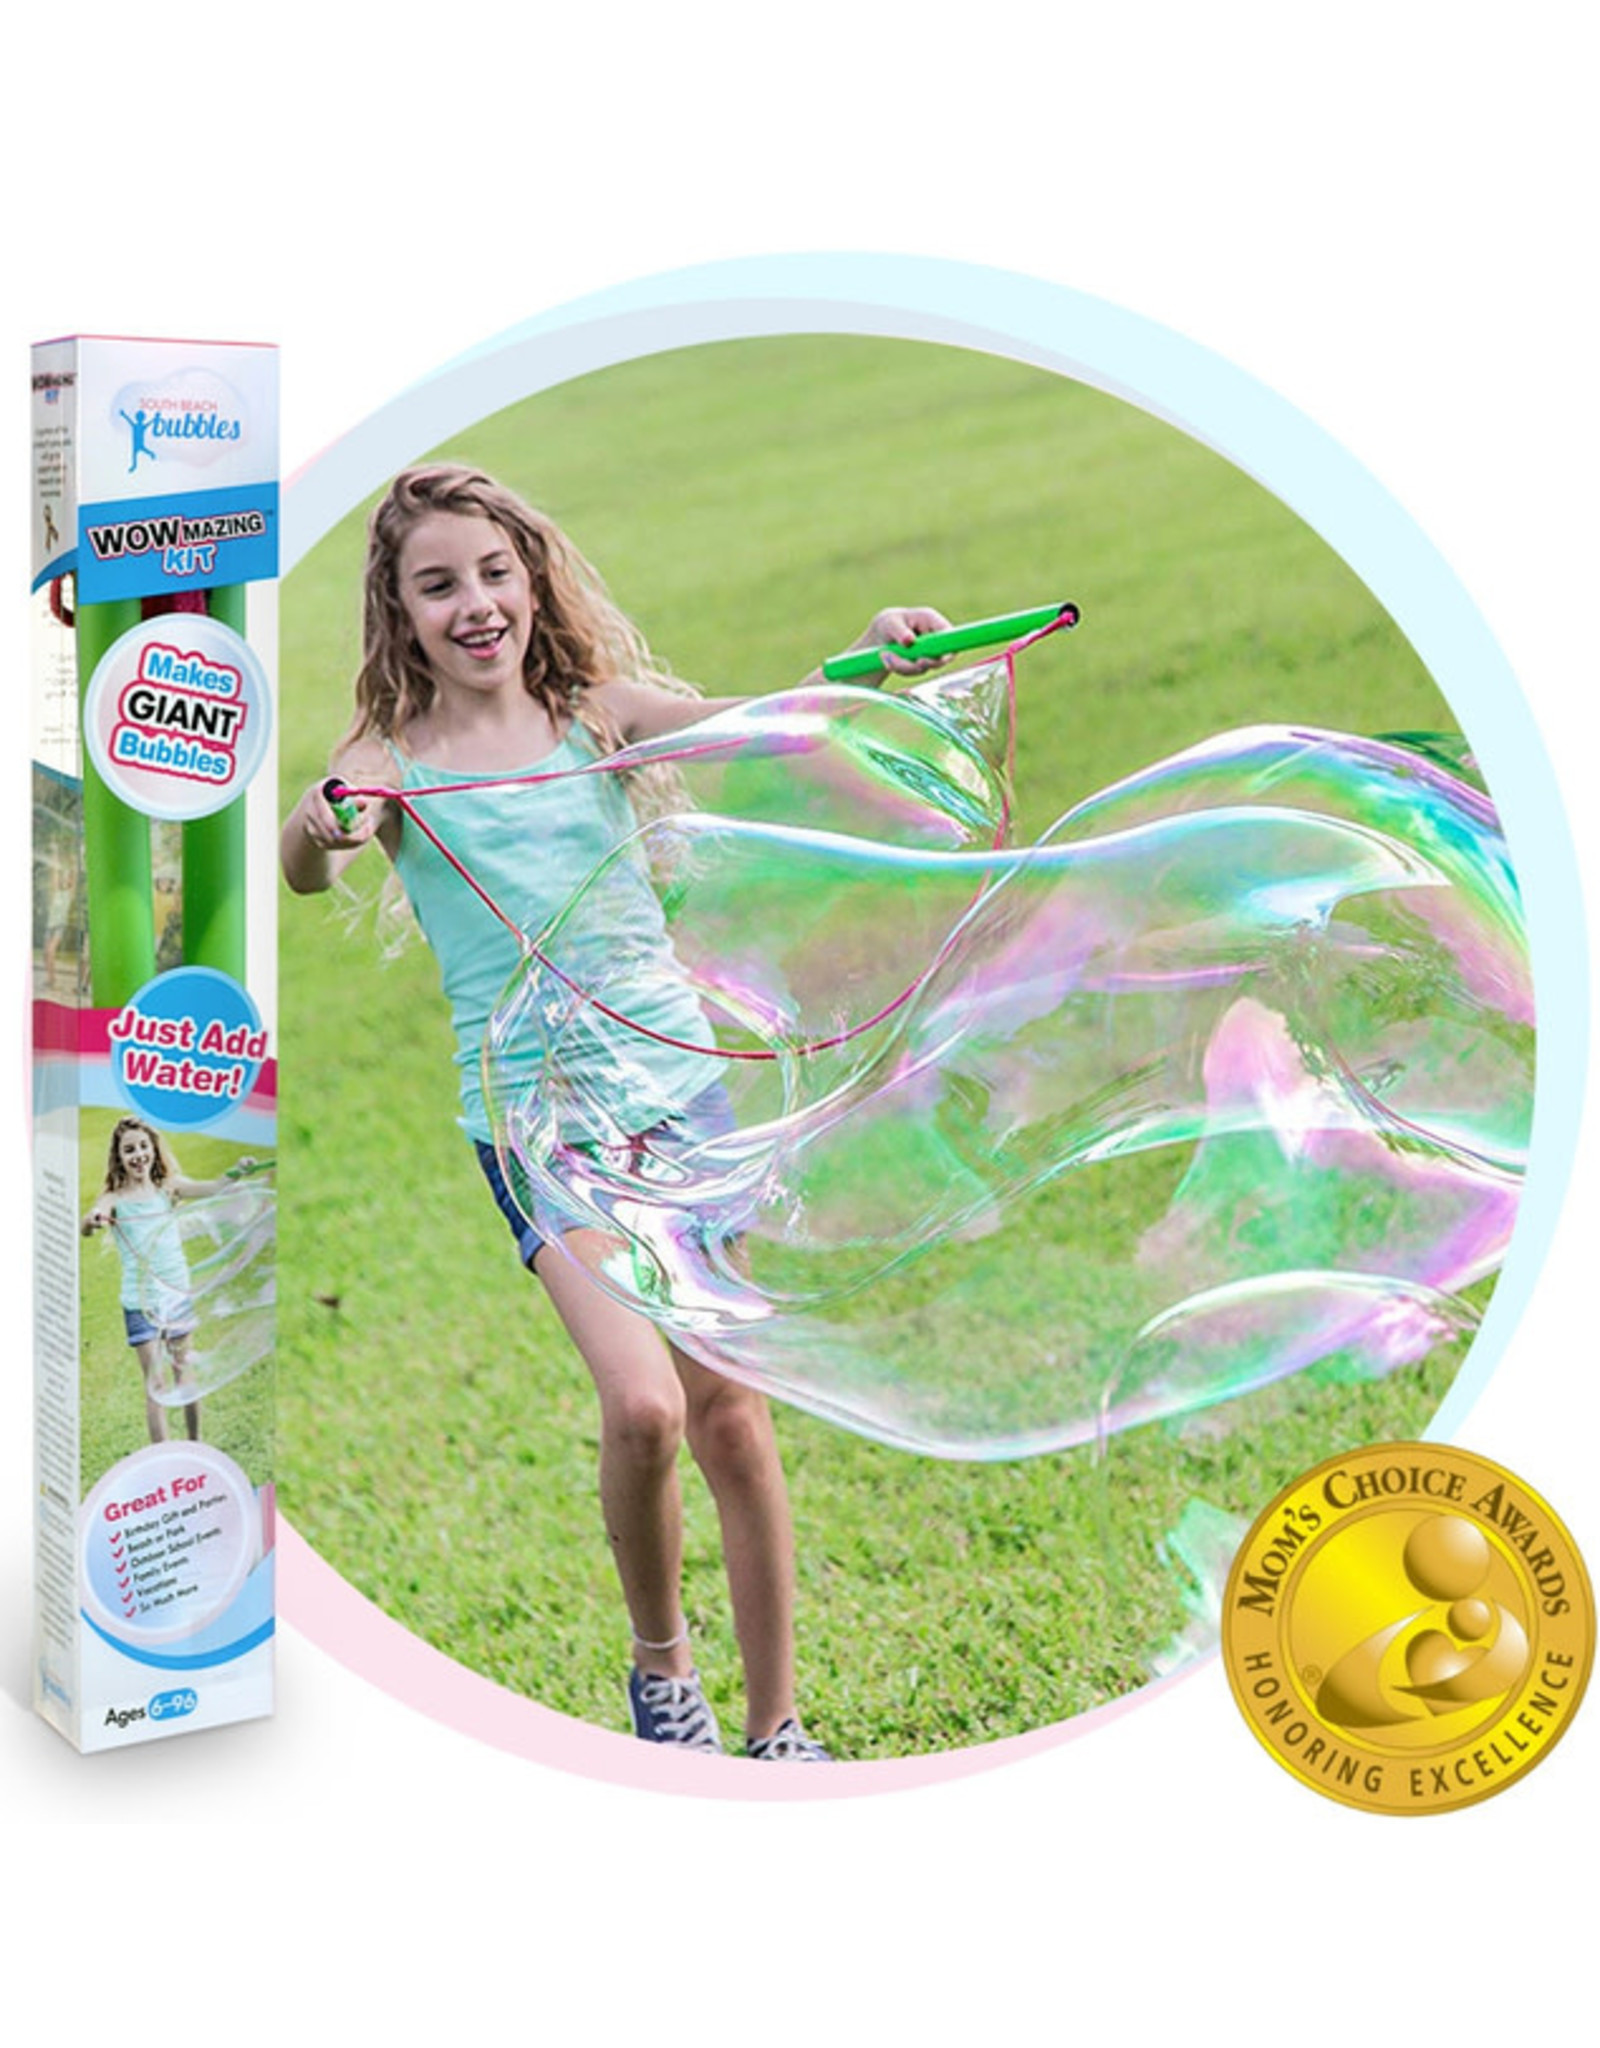 WOWMAZING Giant Bubble Wand & Concentrate Kit